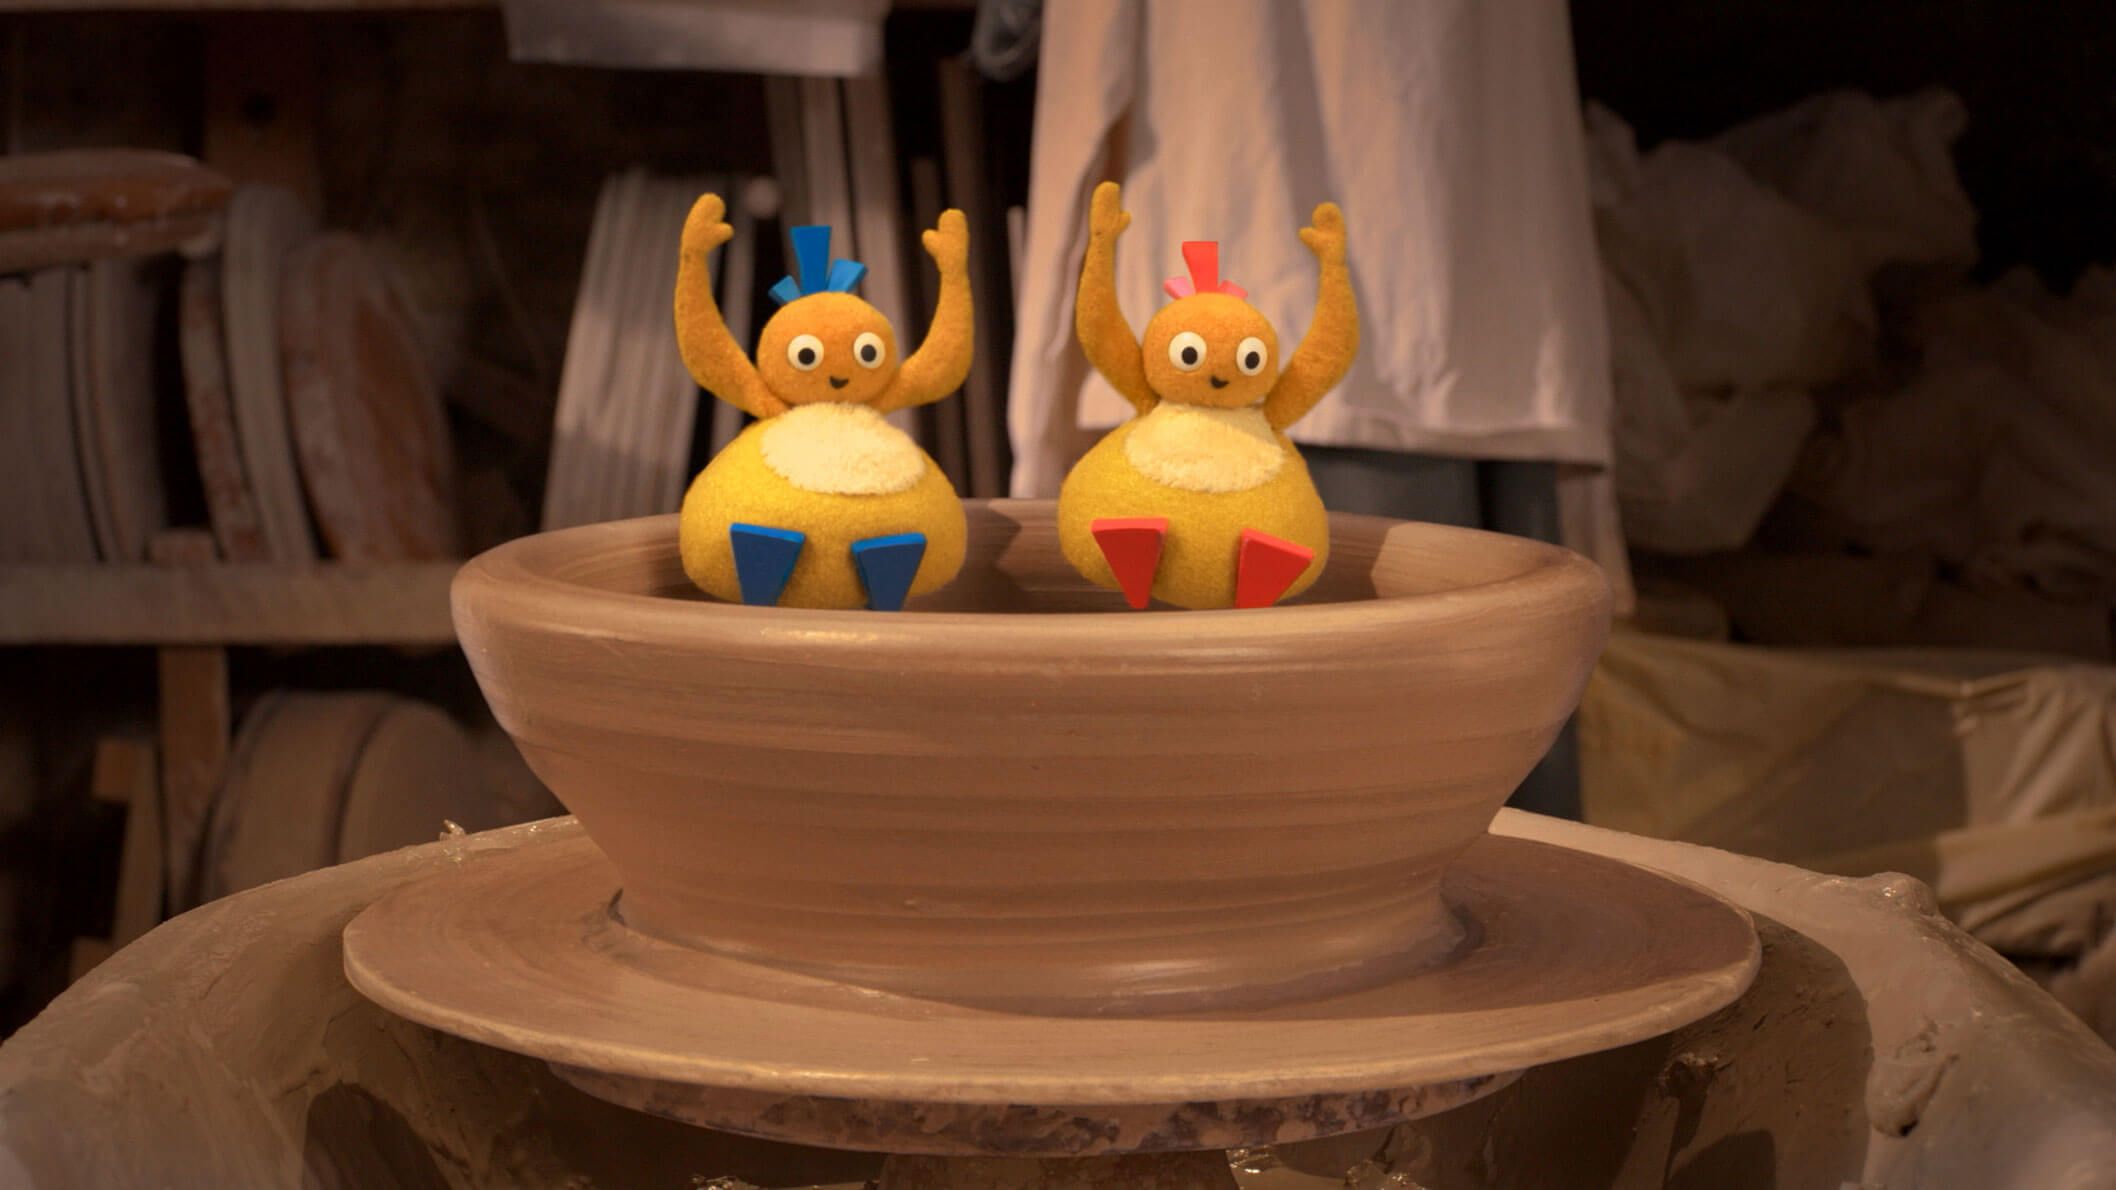 Two small, round and yellow characters sitting in a wed clay bowl waving their hands up in the air.